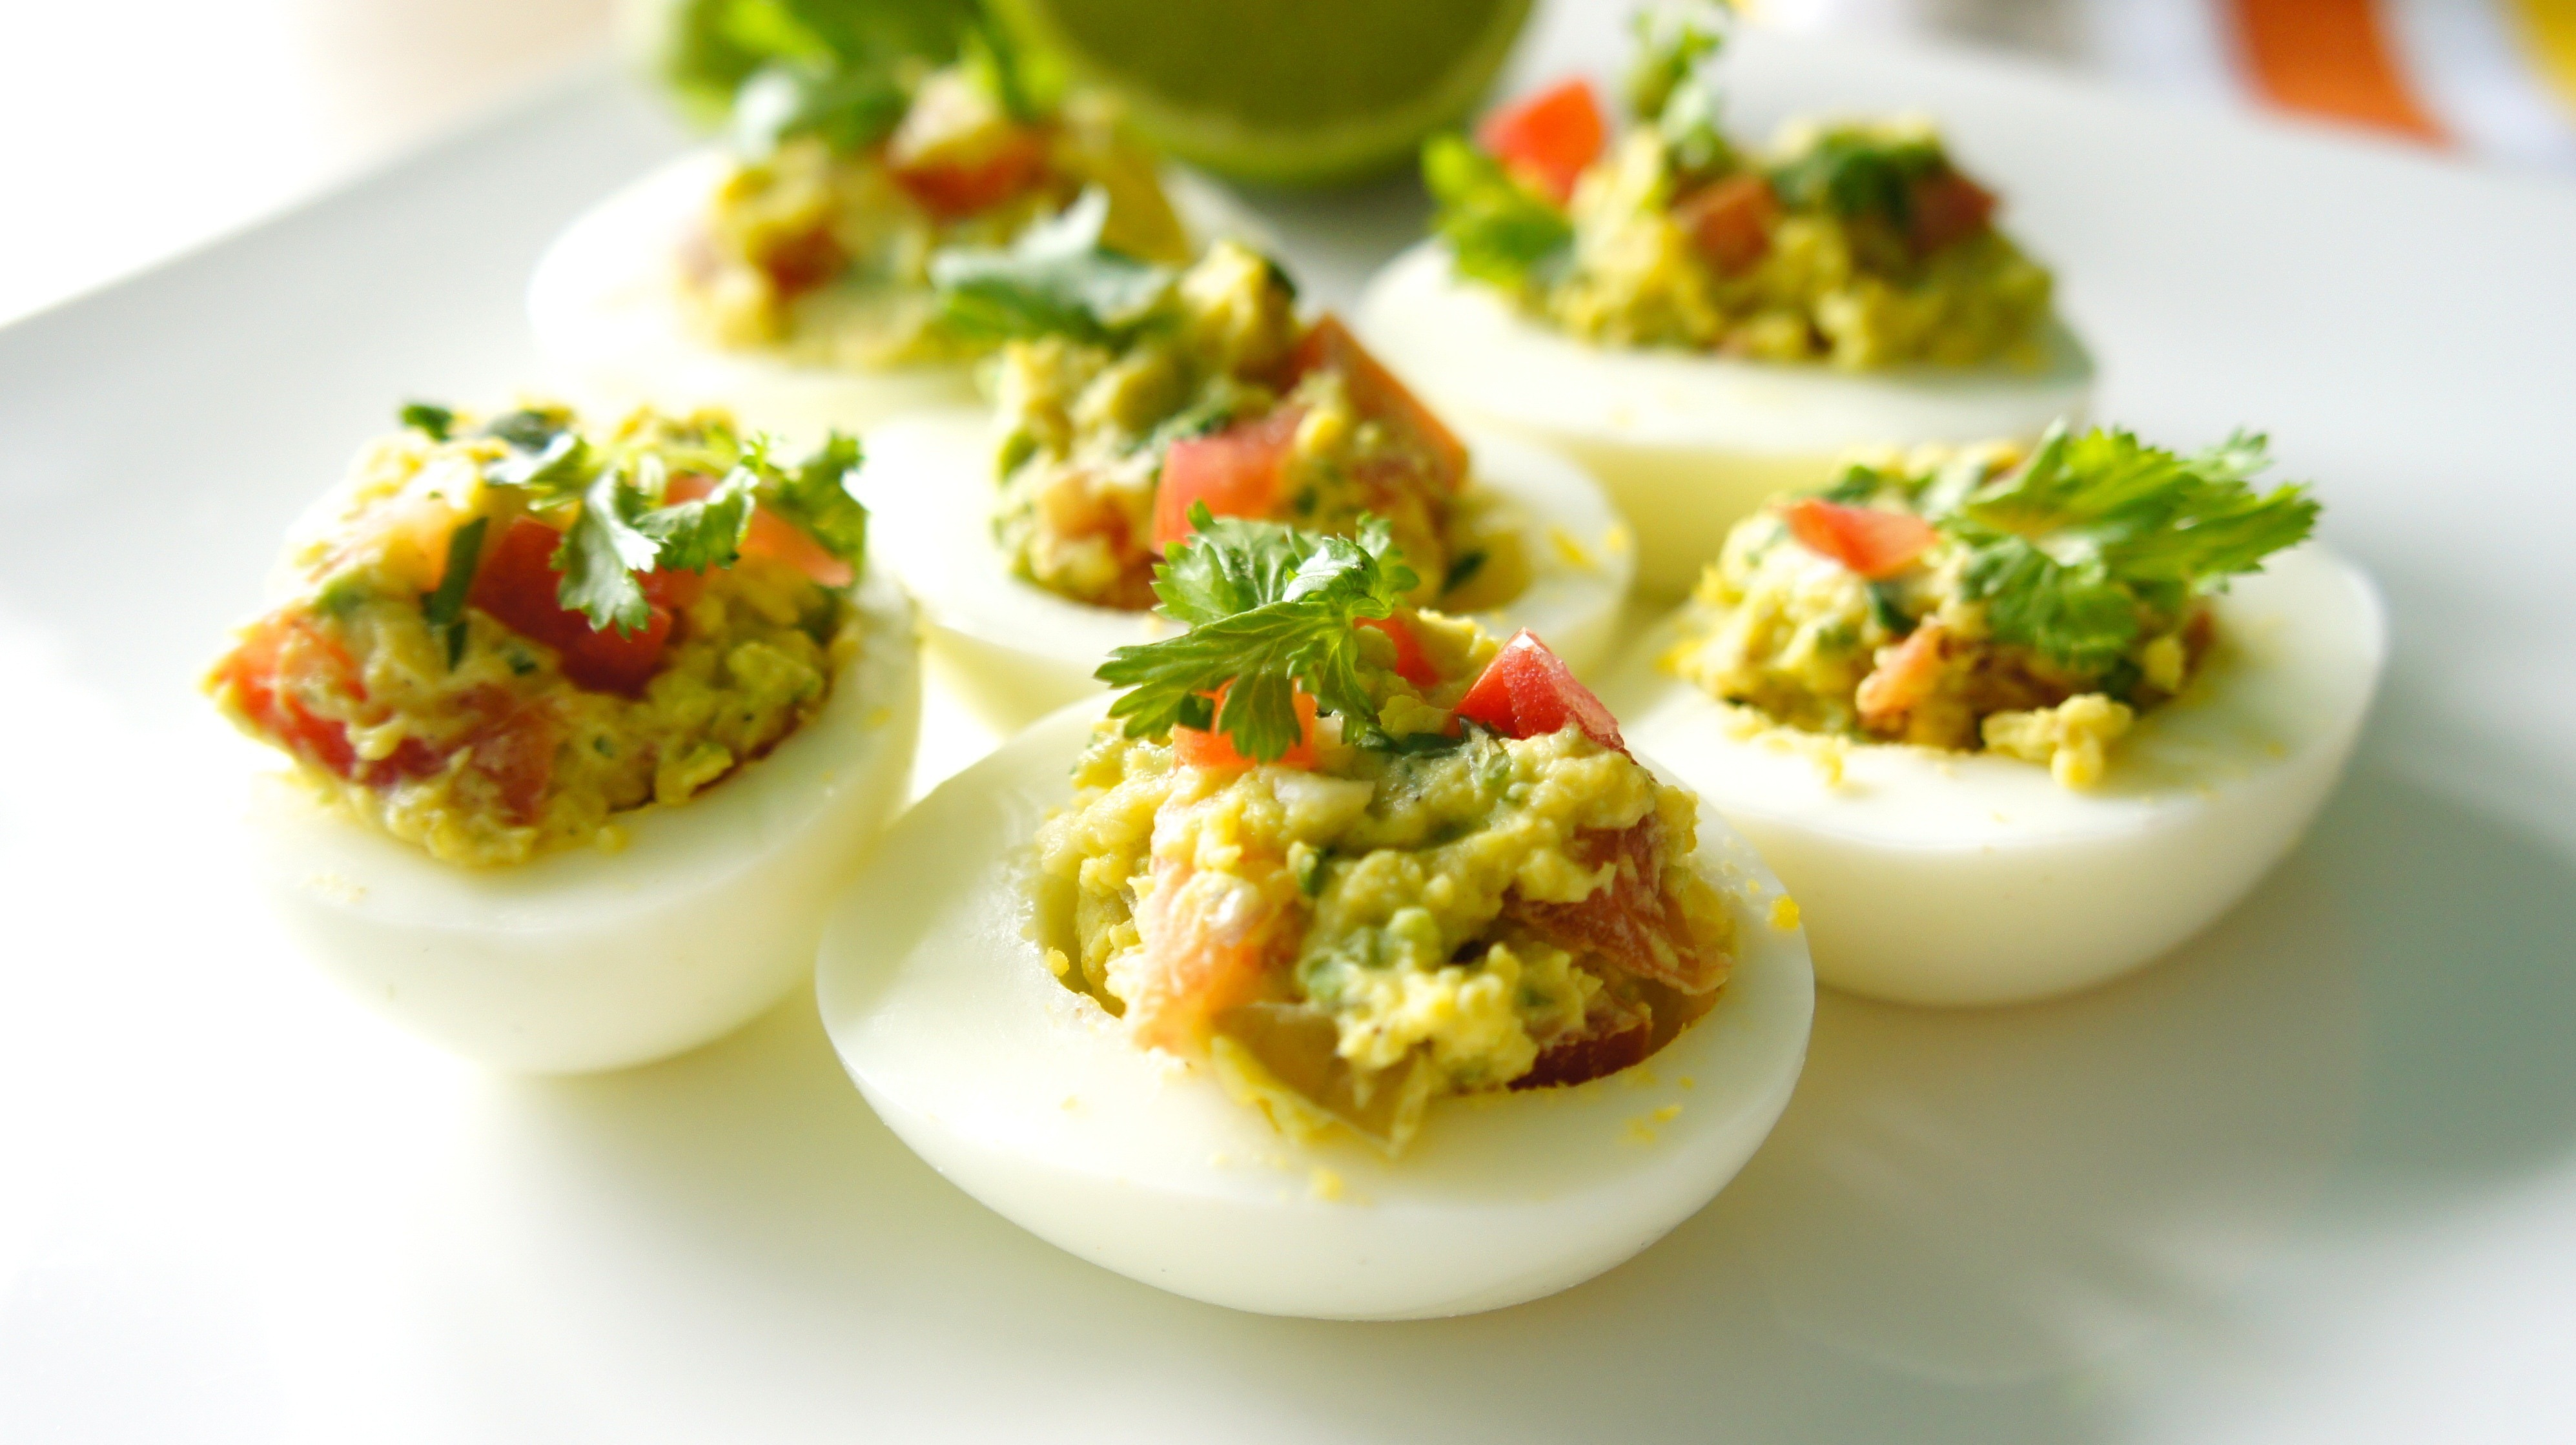 Avocado deviled eggs with garnish.